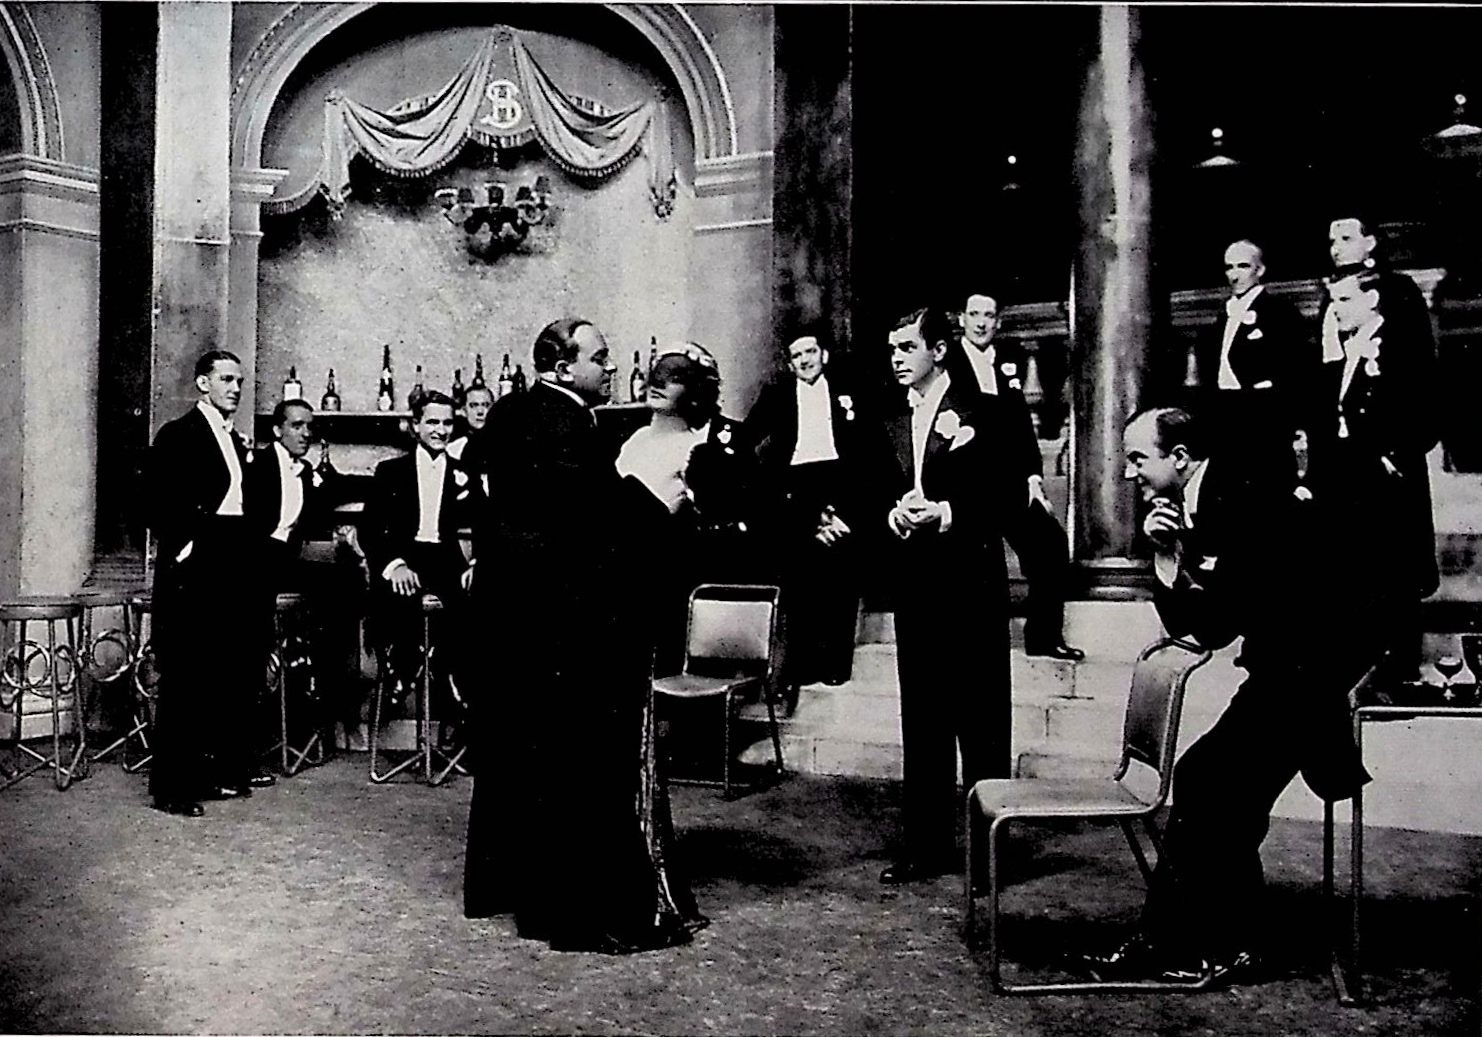 The Marquise de Faublas at the Ball, with Mustapha Bei and other gentlemen. (Photo: Thomas Krebs Archive)